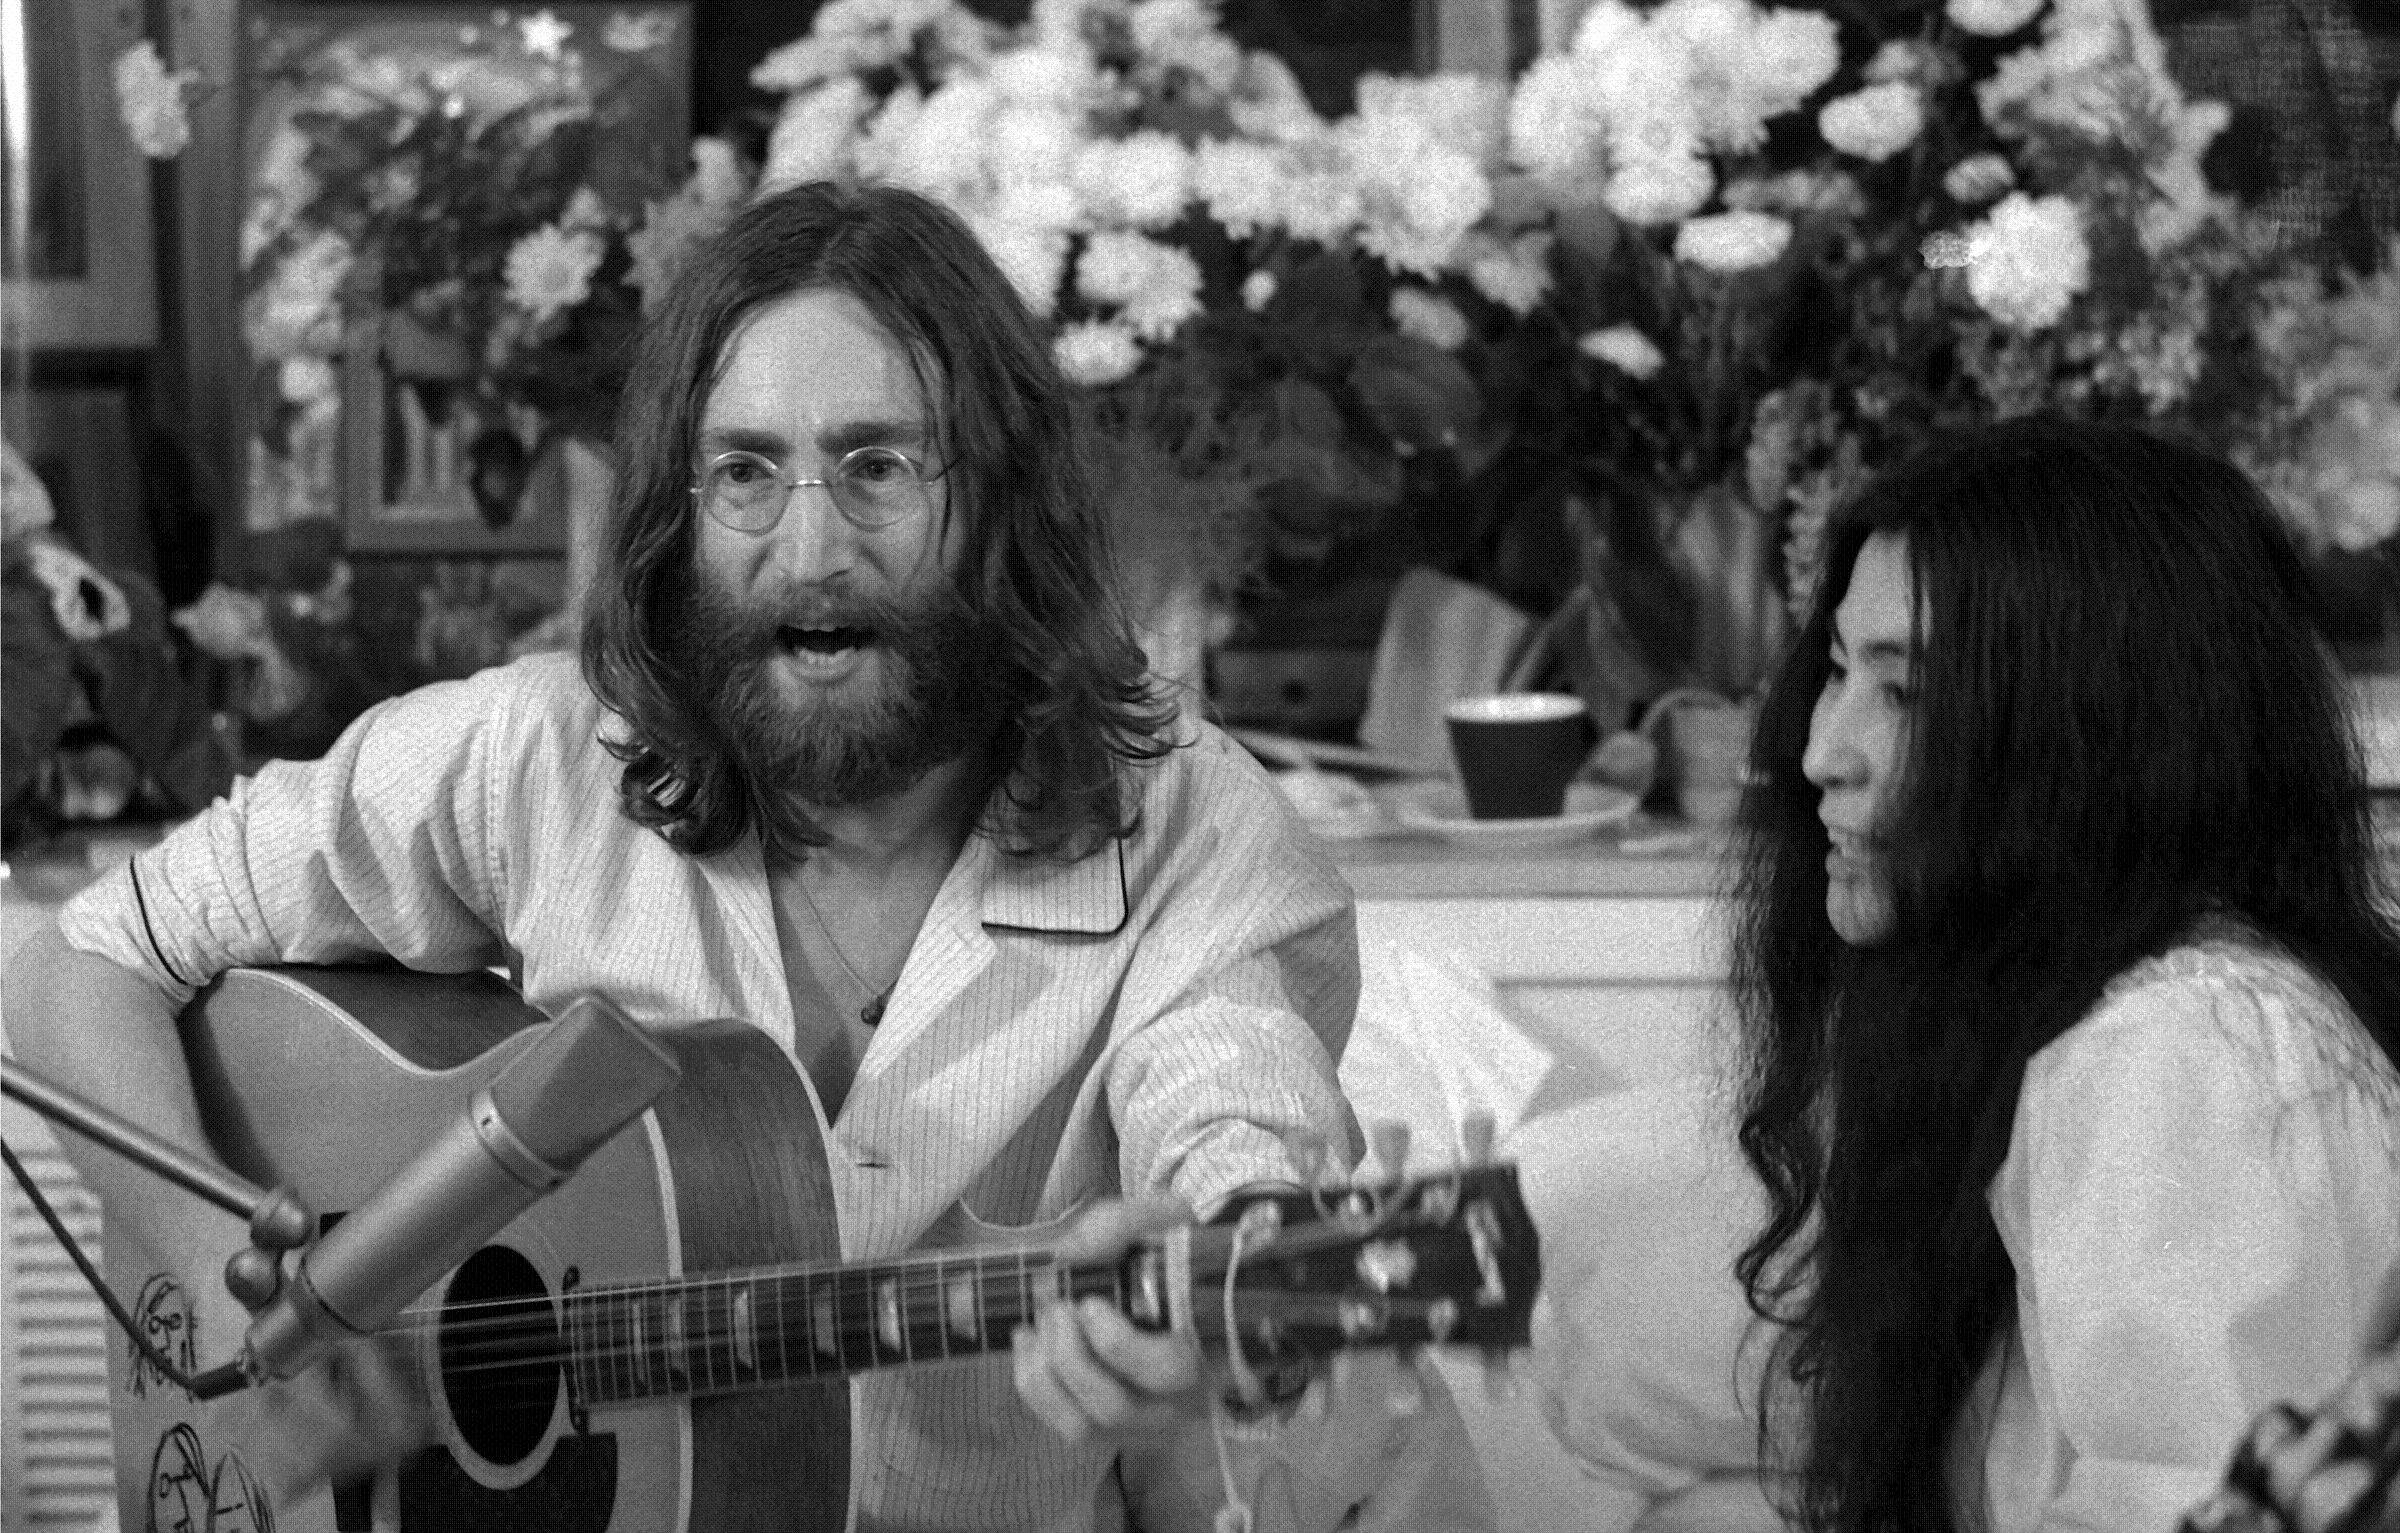 John Lennon, seen here with and wife Yoko Ono at their 1969 bed-in event, was killed 31 years ago this week in New York City.